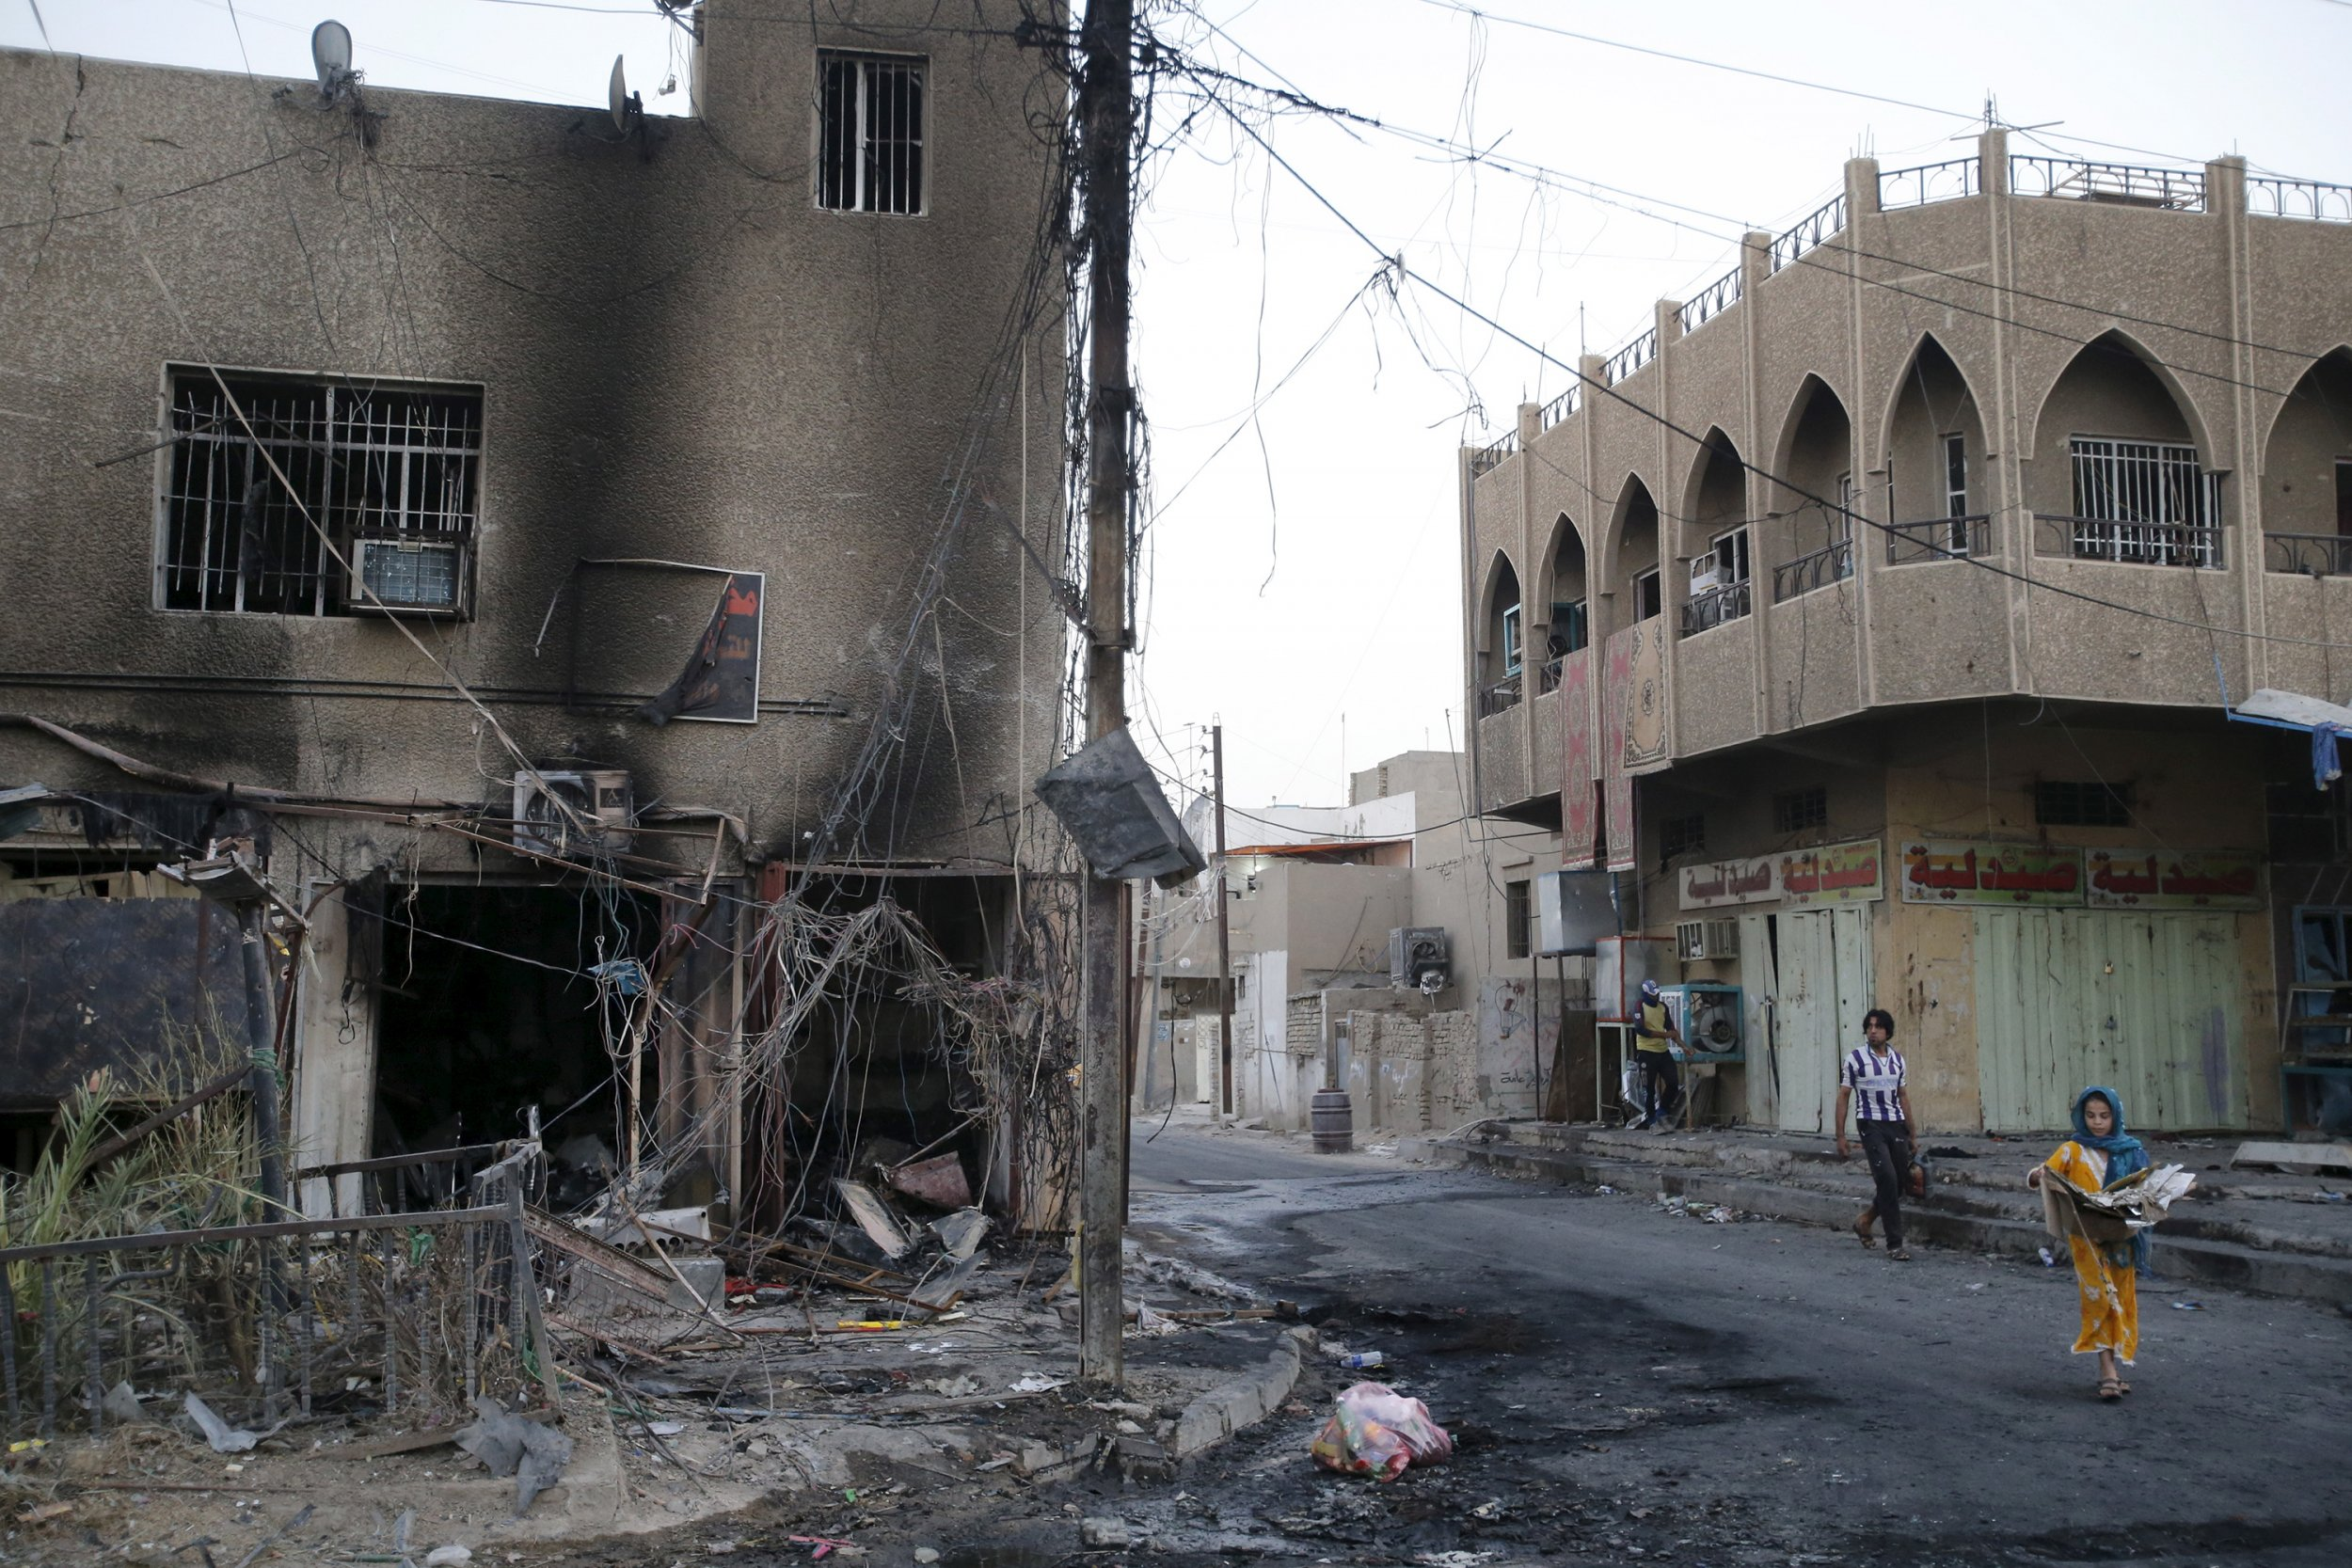 U S  Embassy in Iraq Confirms 'Several' Americans Kidnapped